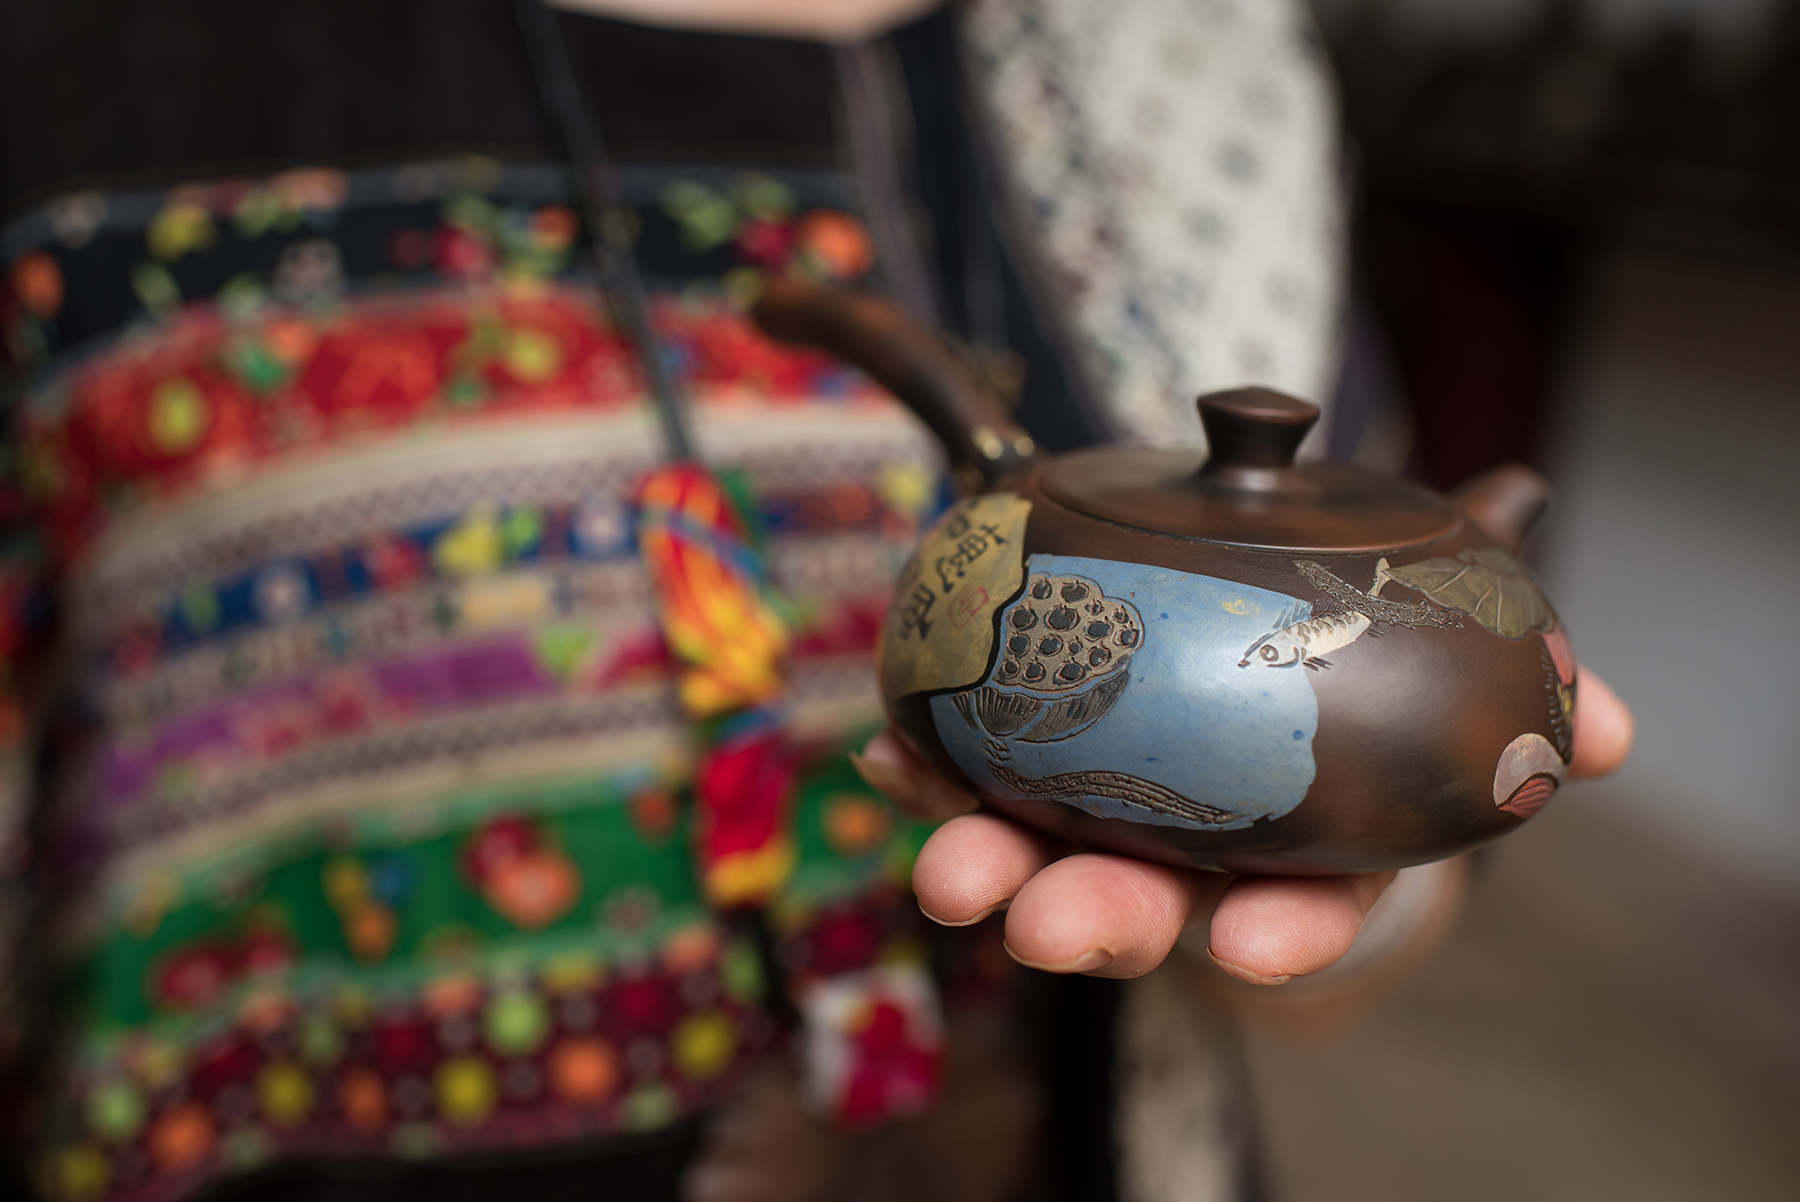 The work of Li Fen Yu, Inheritor of Purple Pottery Intangible Cultural Heritage, Jianshui, Yunnan Province.